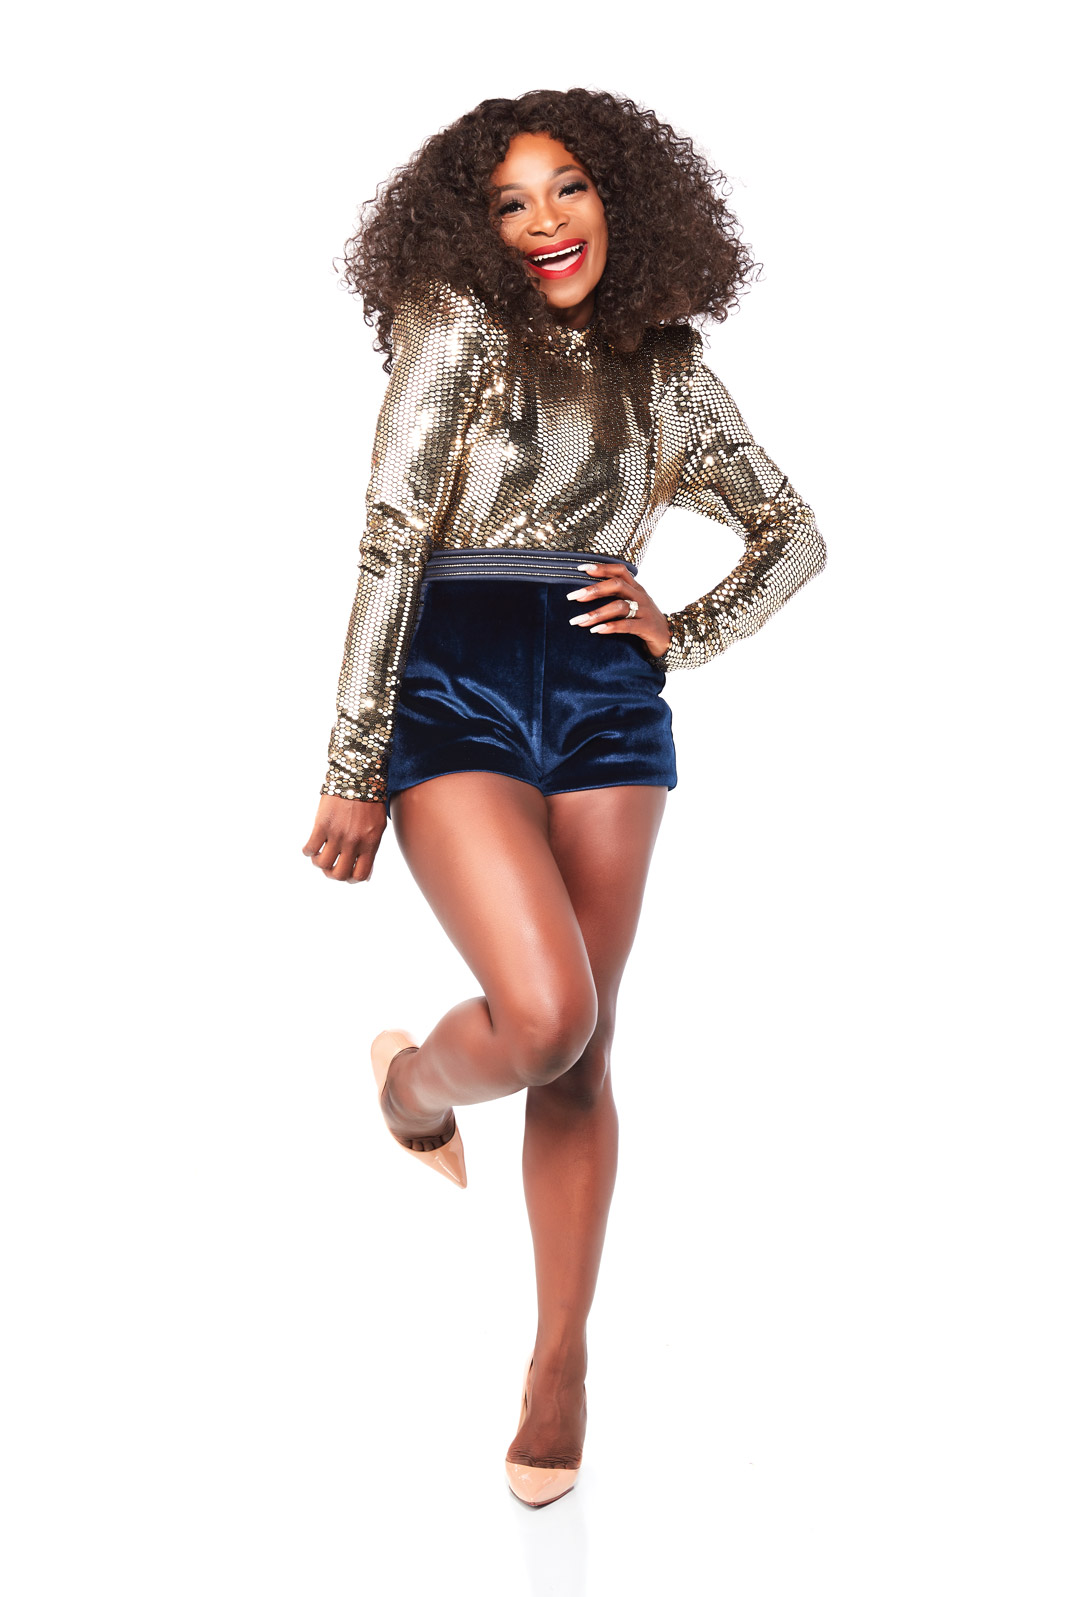 My Style: Uyo Okebie-Eichelberger, founder of Made With Love brands